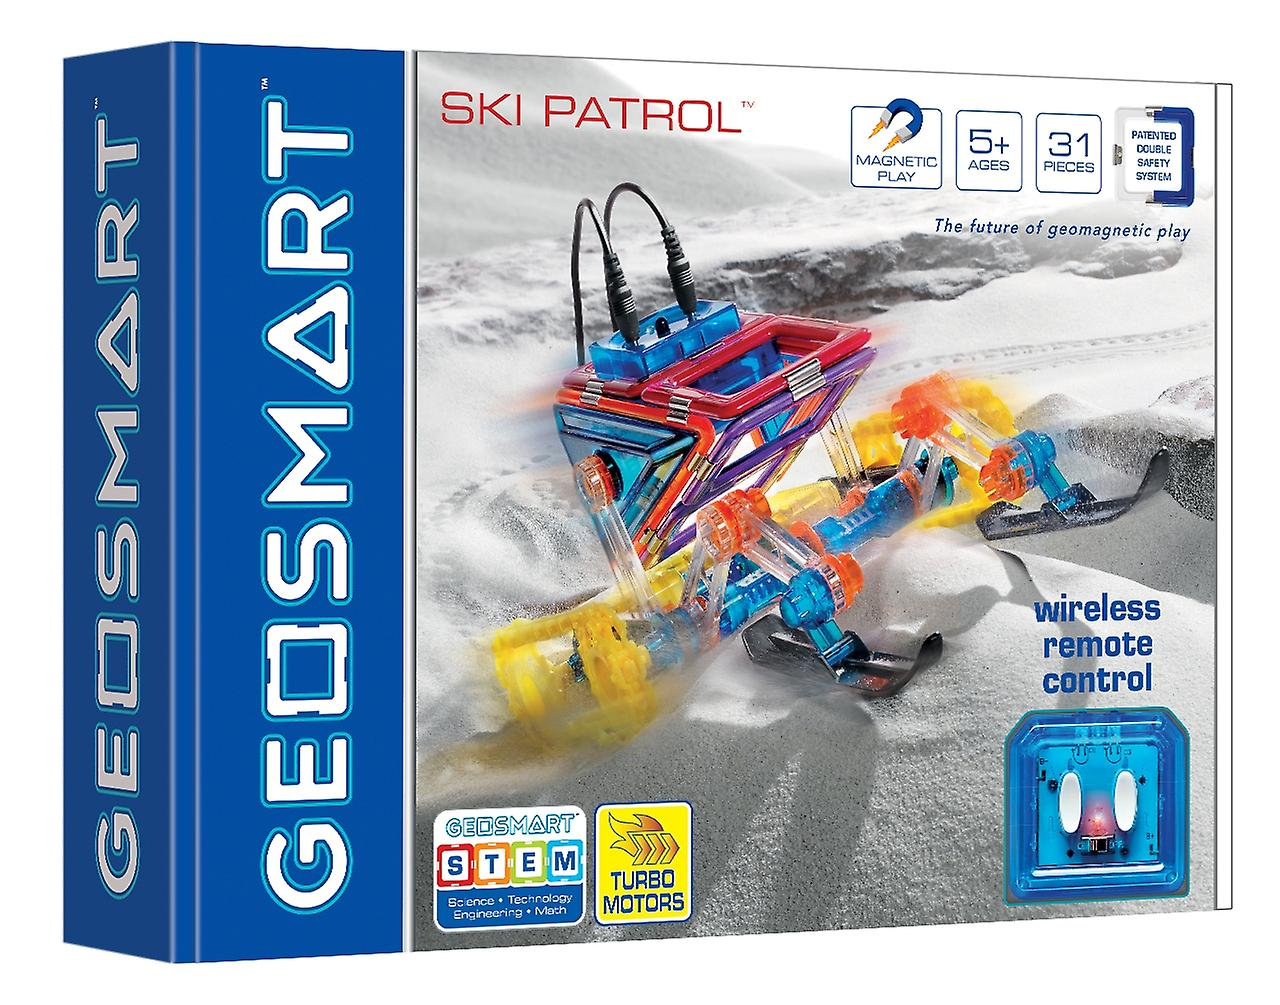 GeoSmart Ski Patrol With Wireless Remote Control Magnetic Play 28 PCs